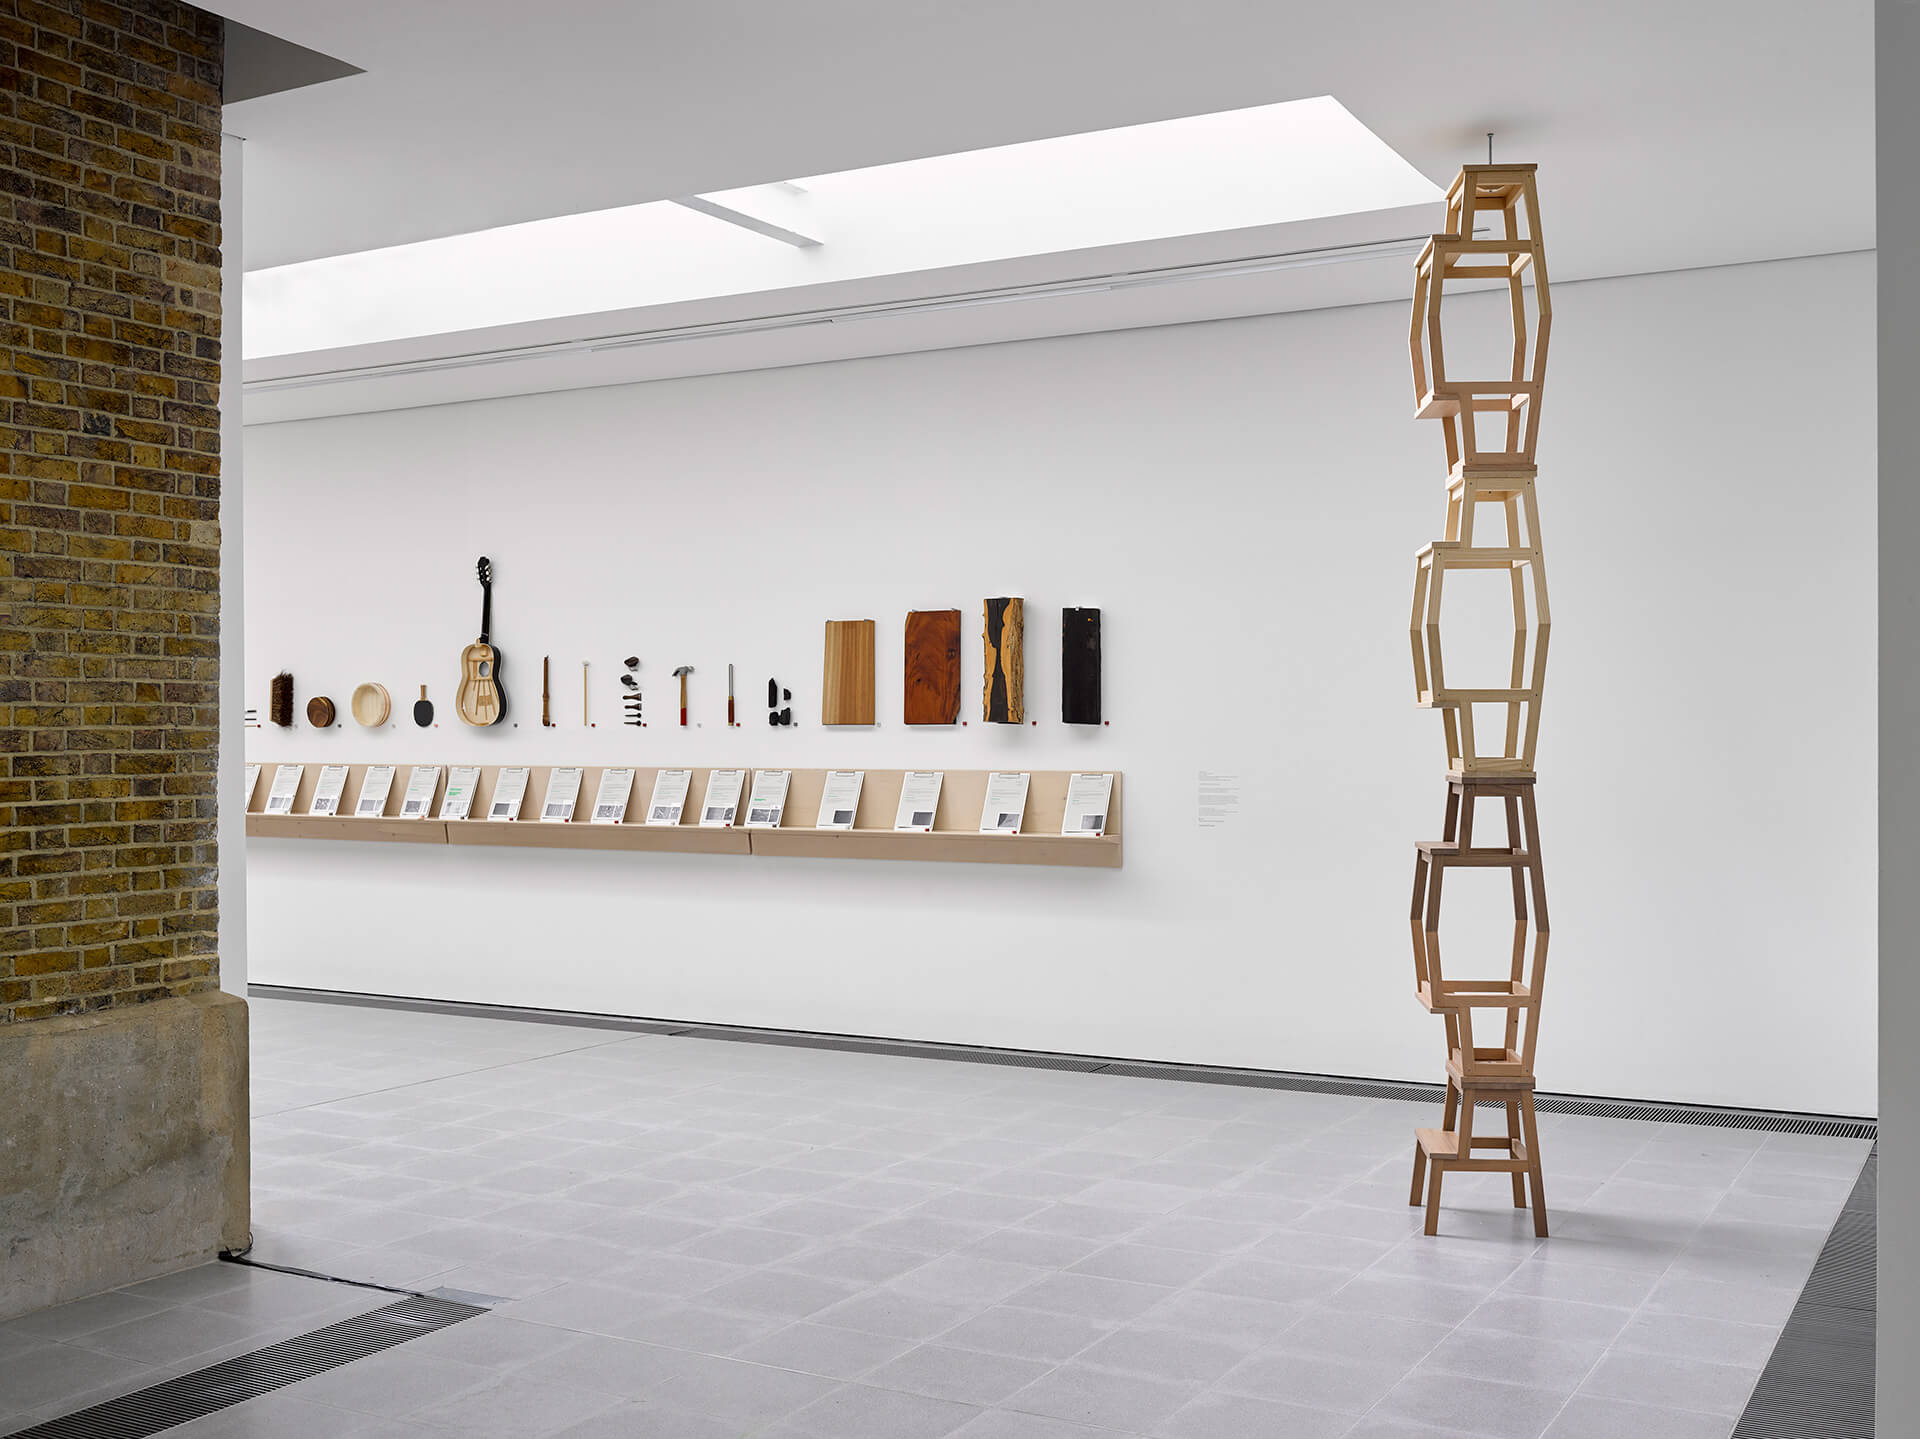 Formafantasma, Cambio (Installation view 3, Serpentine Galleries, 4 March – 17 May 2020) | Cambio by Formafantasma at the Serpentine Gallery | STIRworld